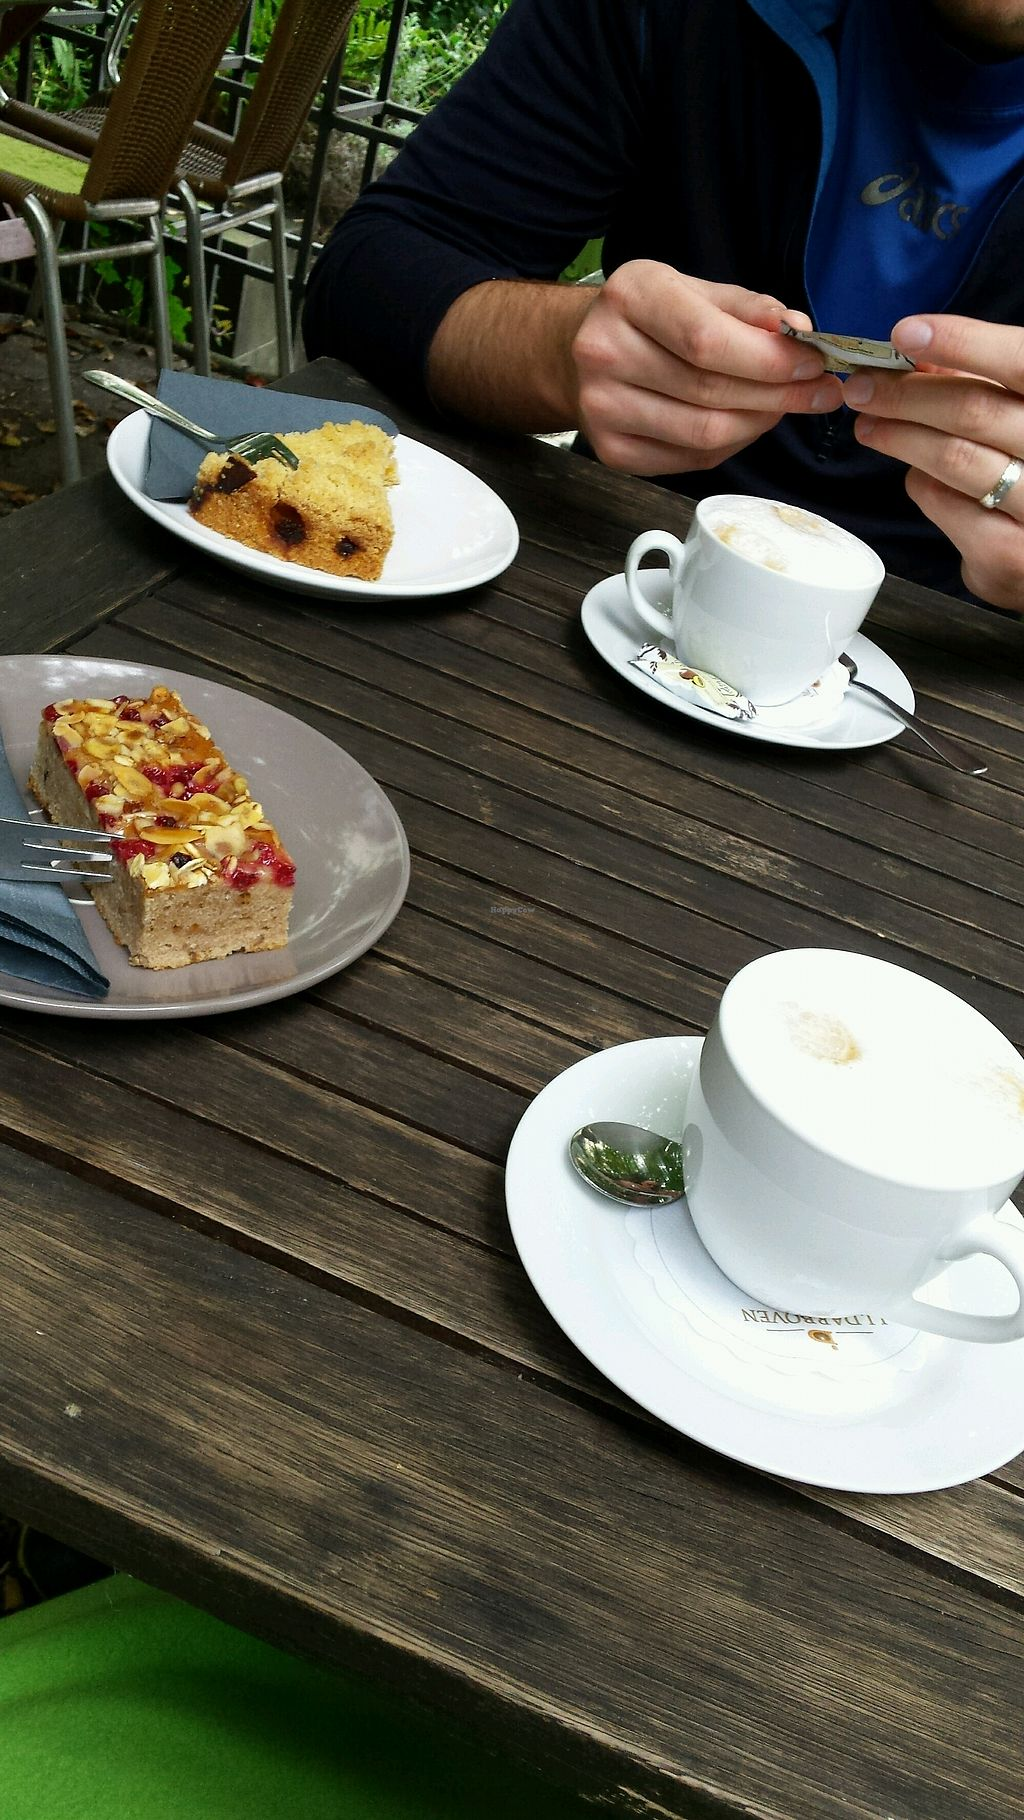 "Photo of Pfefferminzje Cafe Bistro  by <a href=""/members/profile/AnnaPonomareva"">AnnaPonomareva</a> <br/>vegane Kuchen und Kaffeespezialitäten <br/> September 8, 2017  - <a href='/contact/abuse/image/64413/301965'>Report</a>"